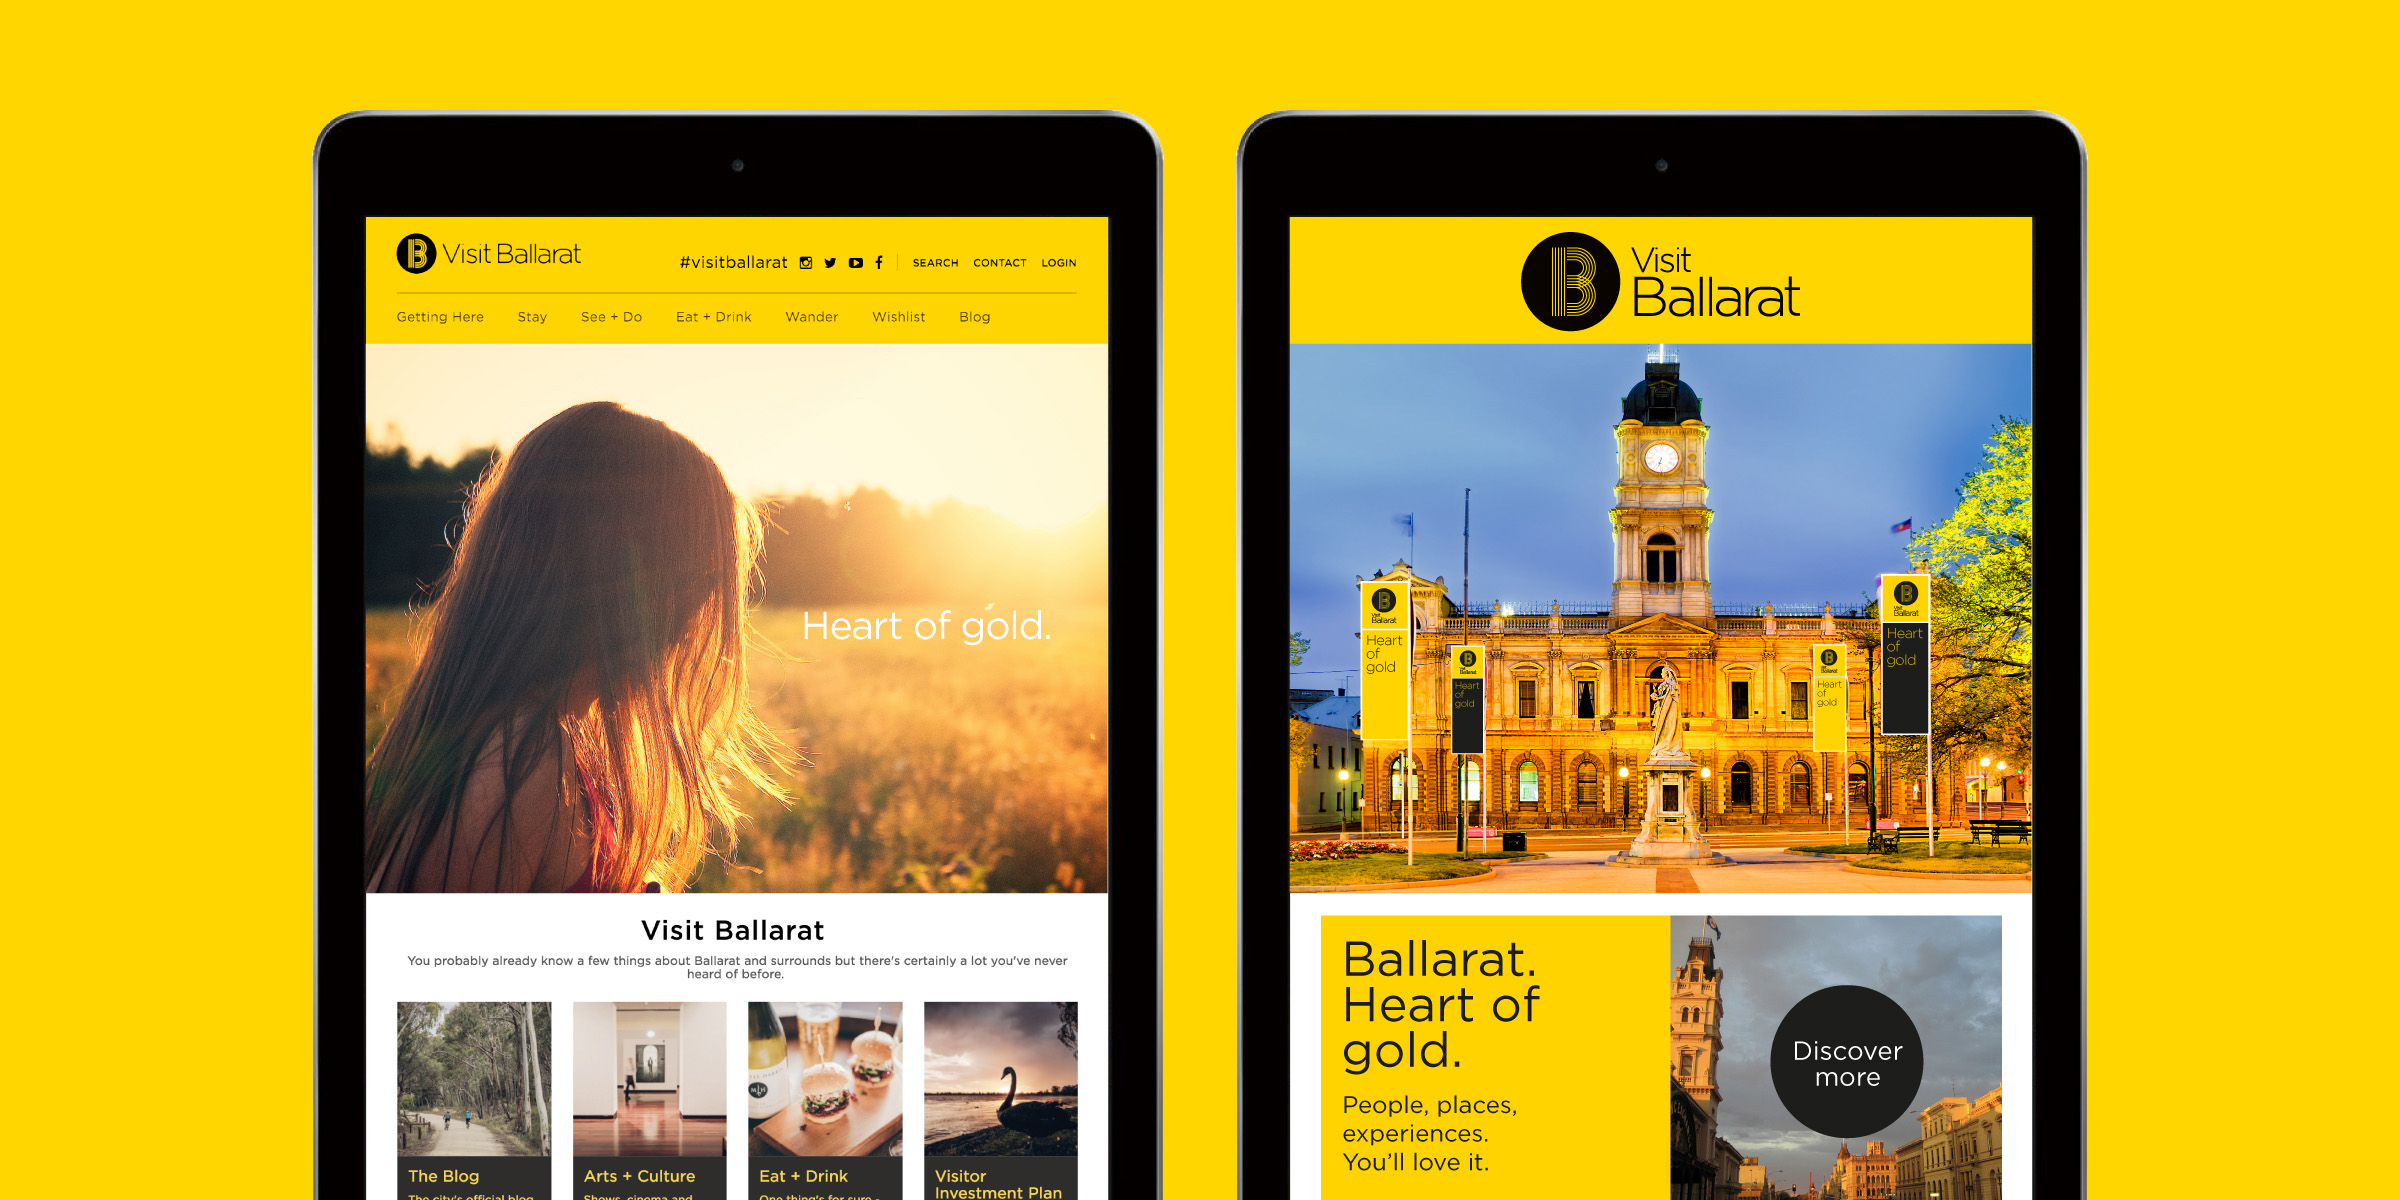 Visit Ballarat Brand Website Design